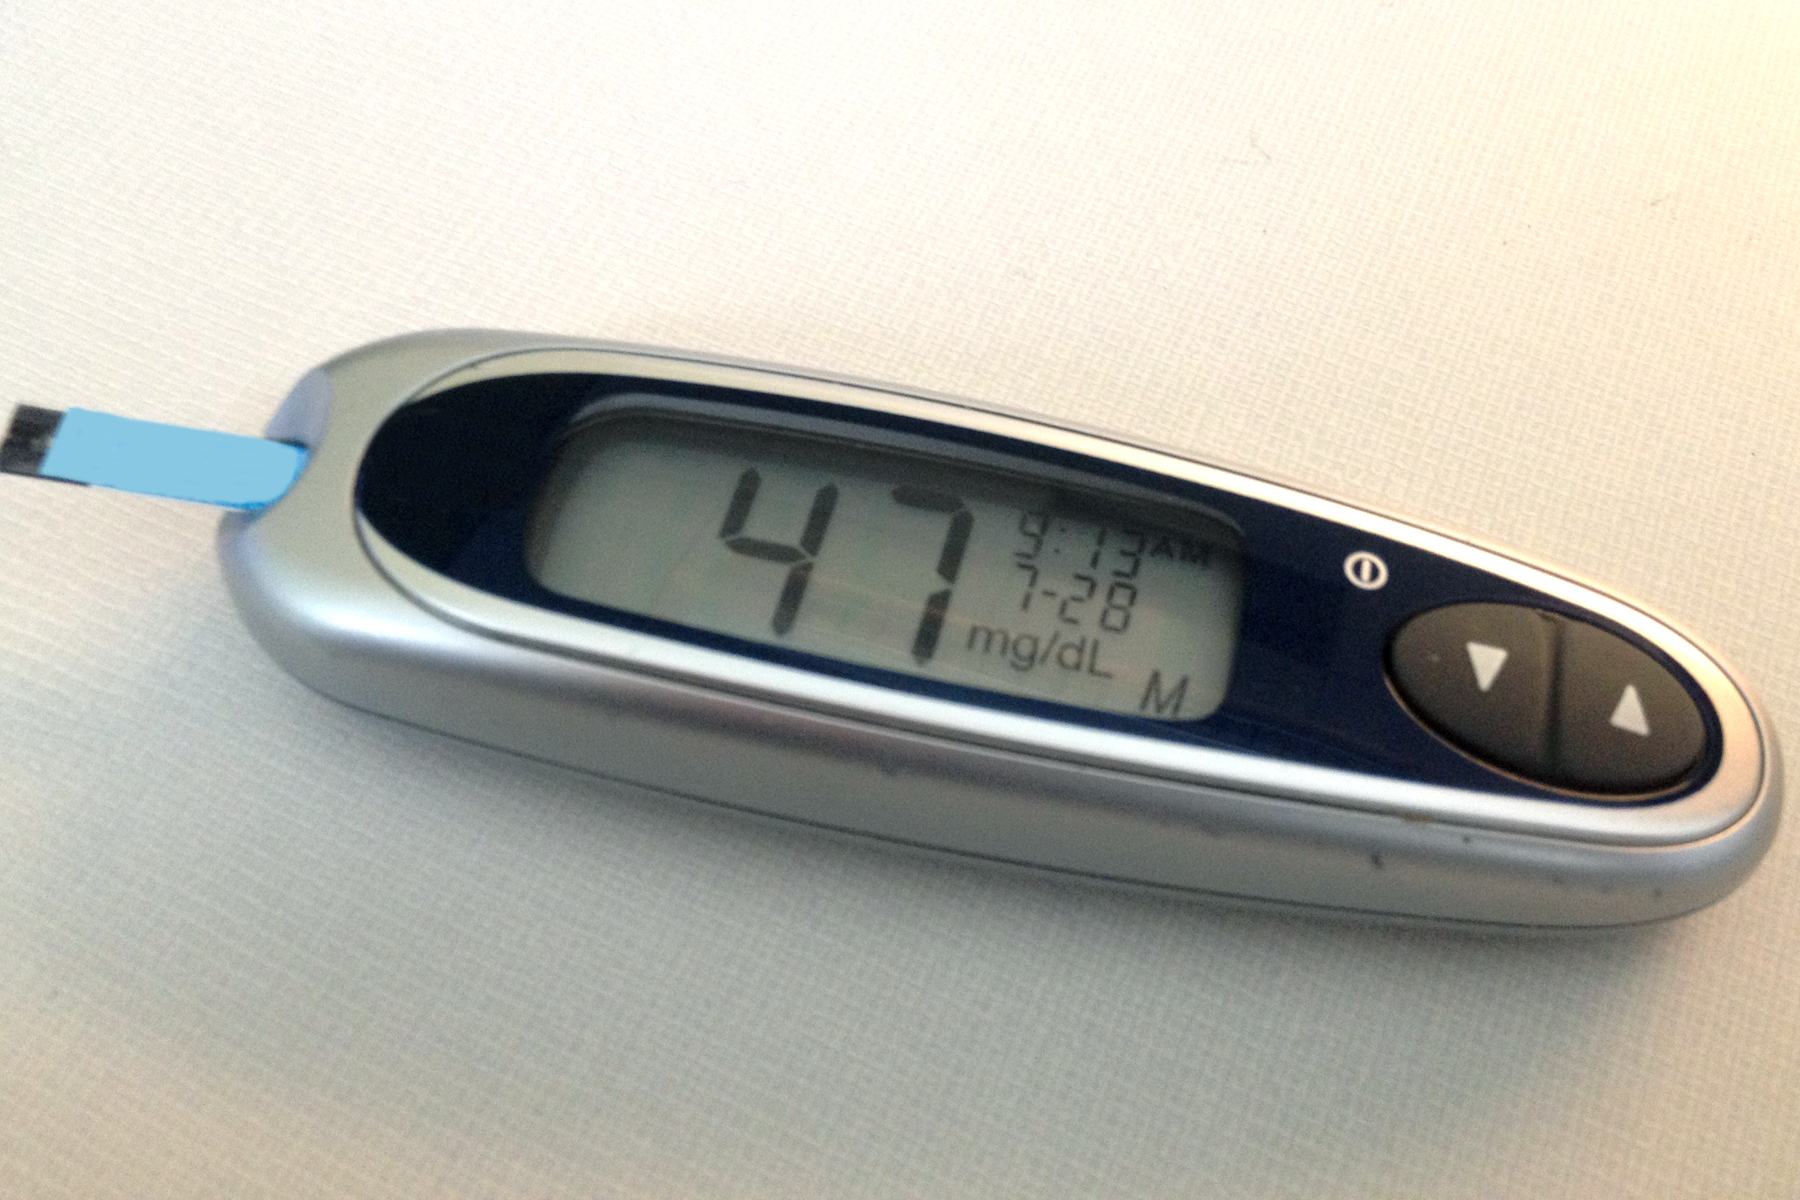 Since starting my weight-loss effort, I've been dealing with frequent bouts of low blood sugar.